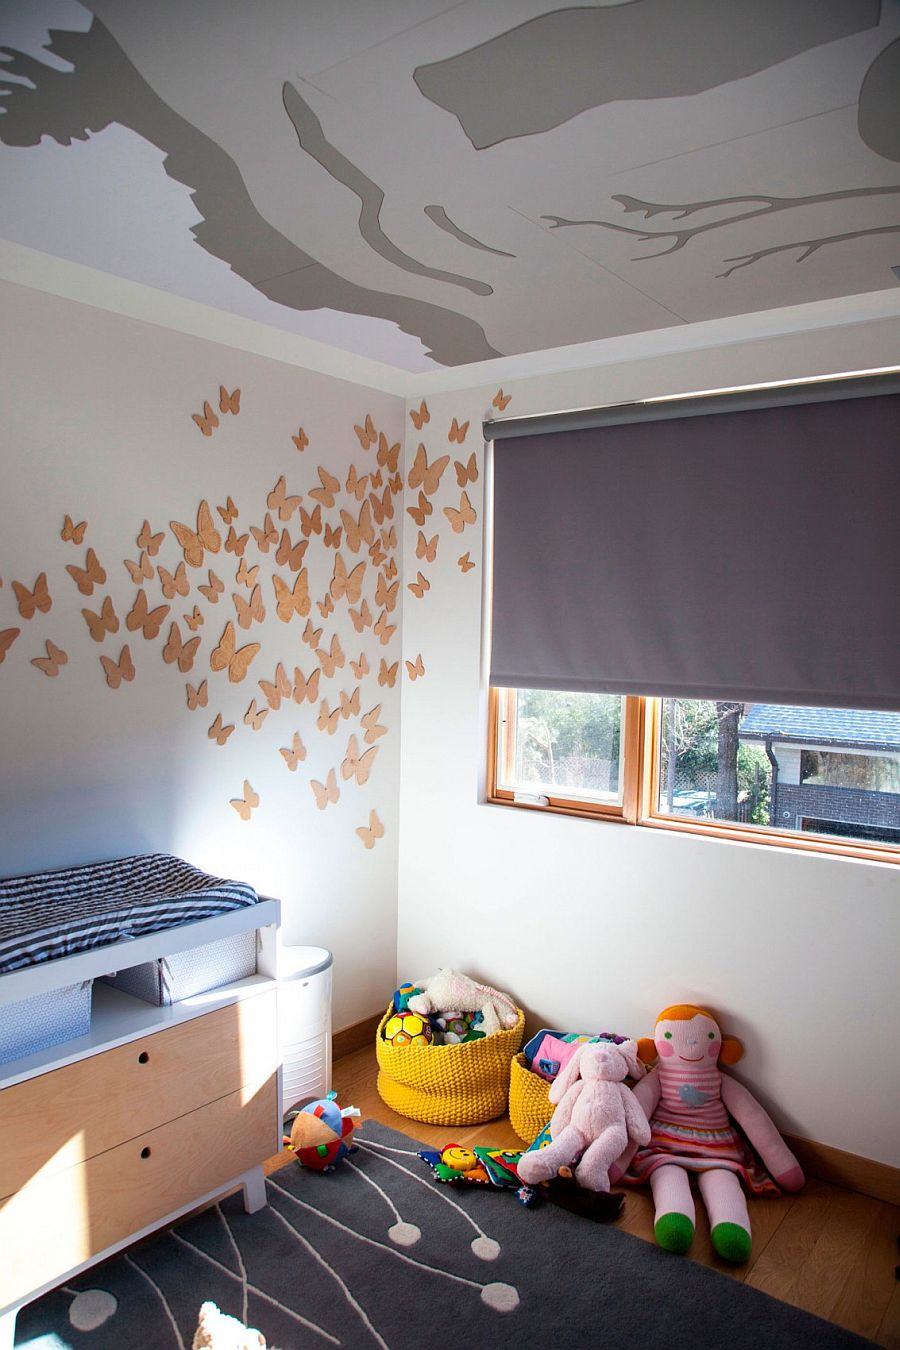 3D wall art creates a fun focal point in the kids' room